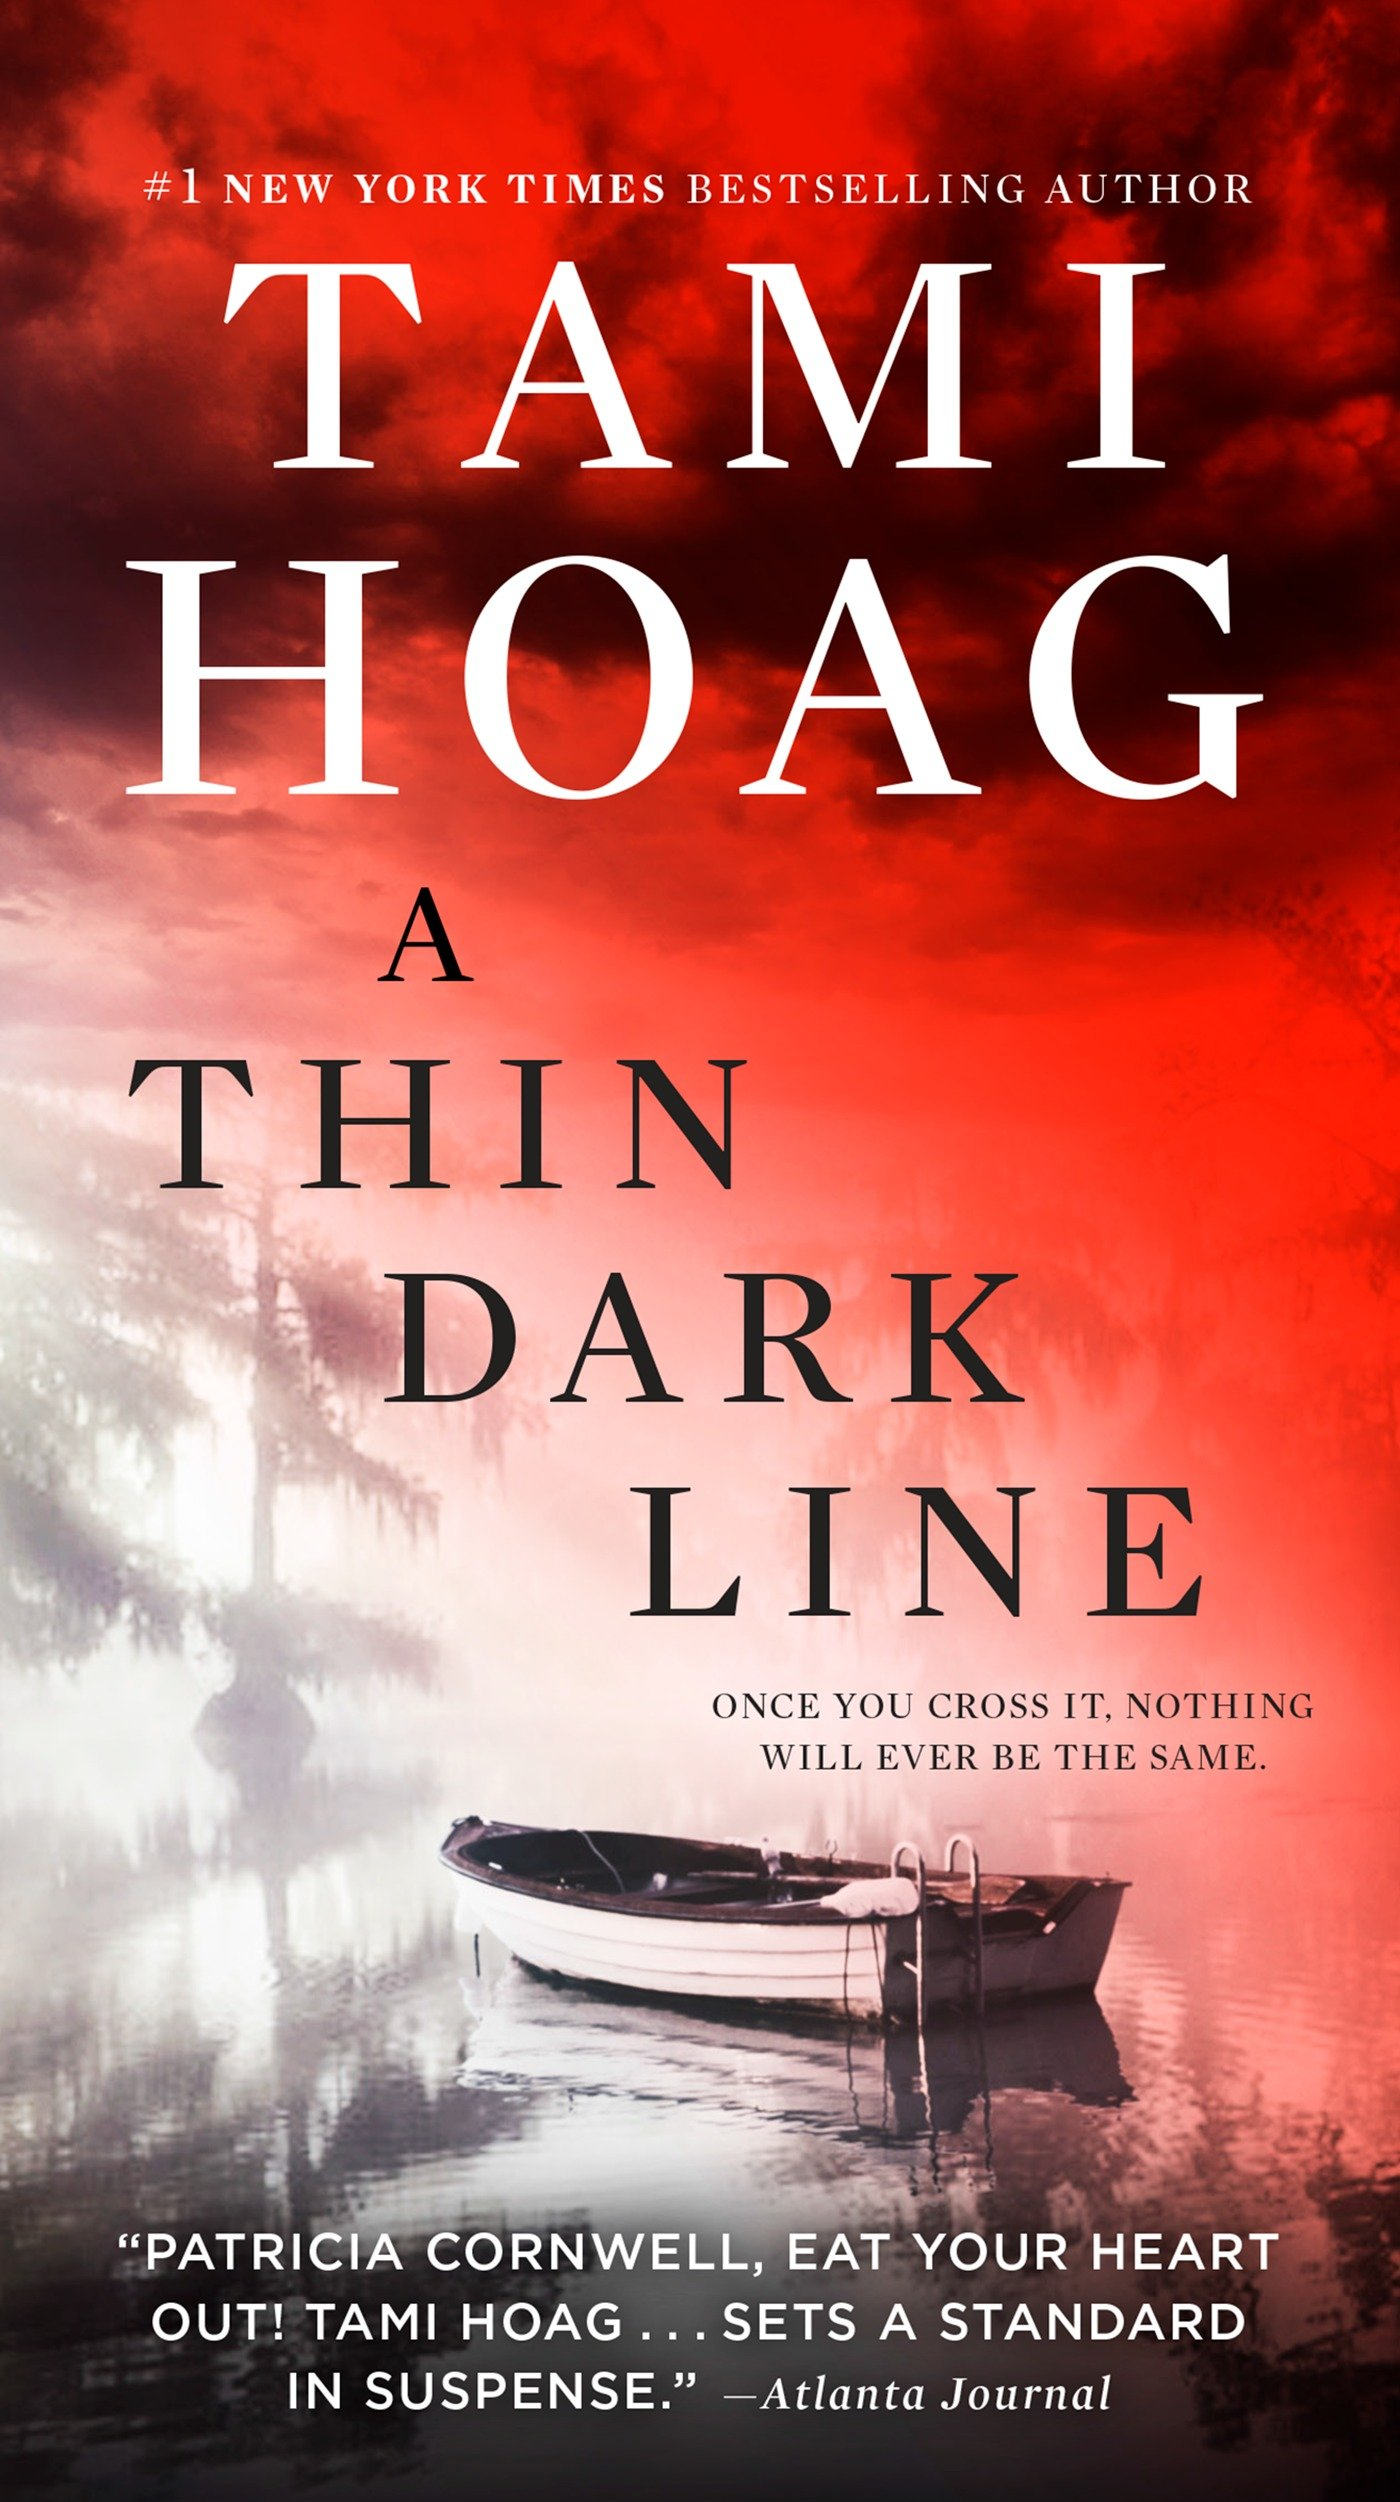 A Thin Dark Line cover image